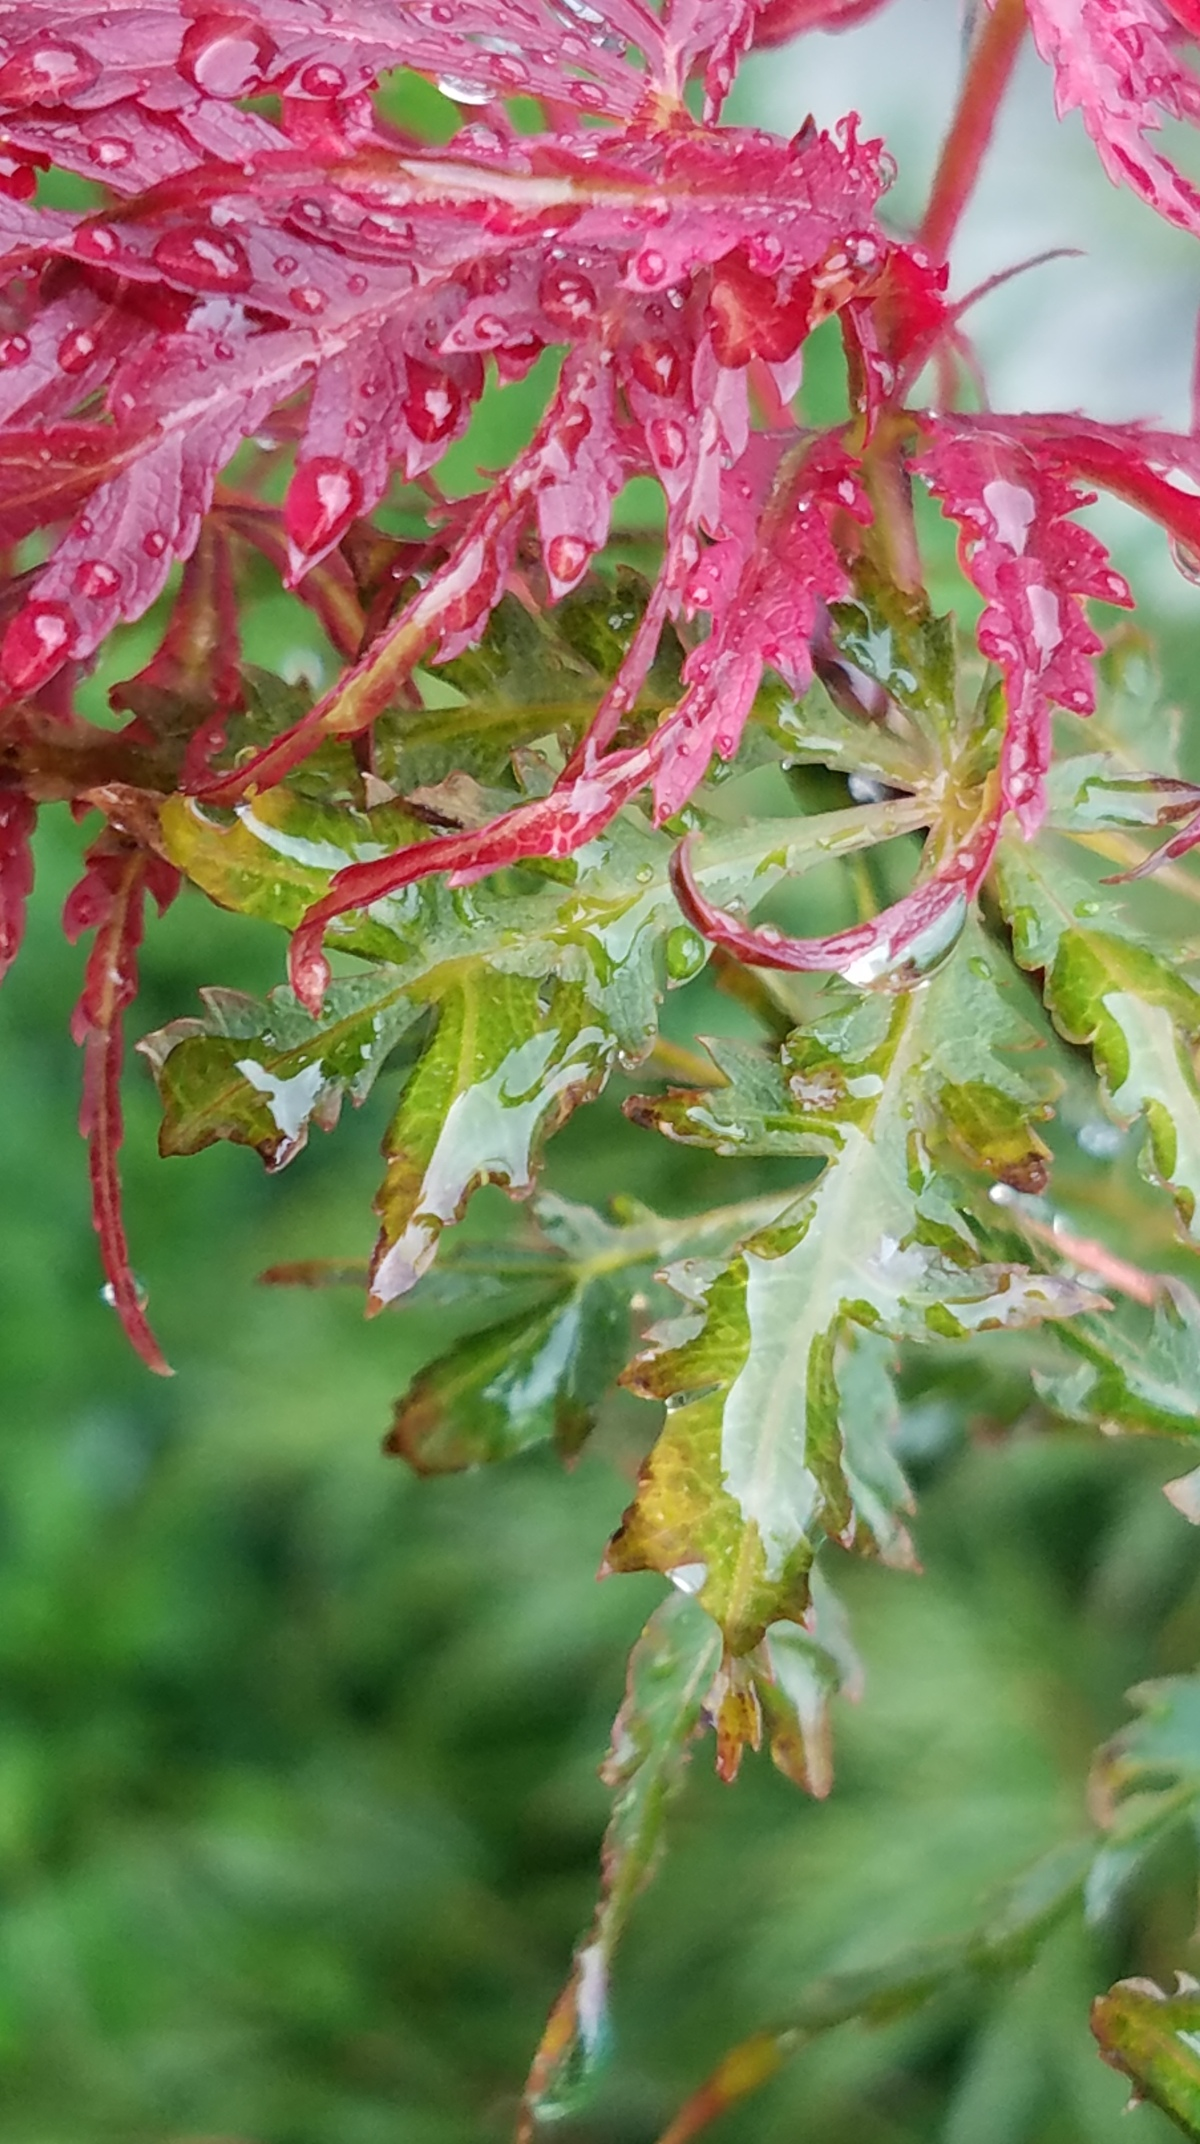 Rainy Japanese Maple